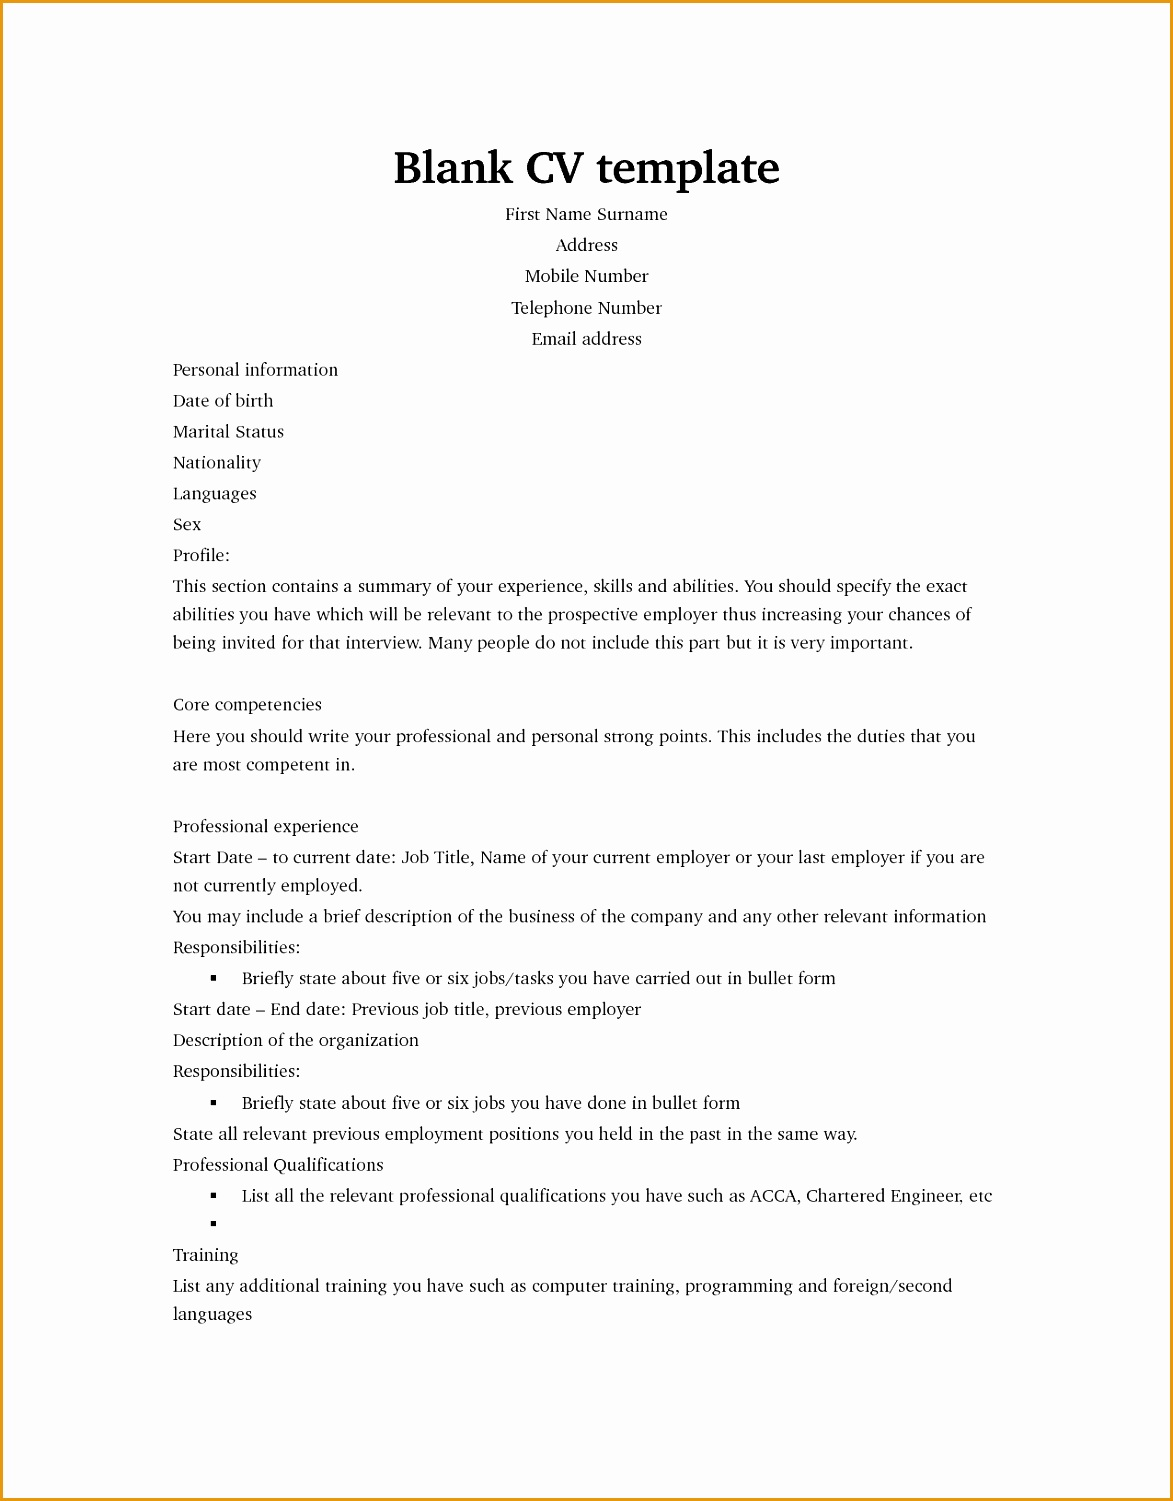 Blank Resume Format Download 7 Blank Resume Template Download Free Samples Examples